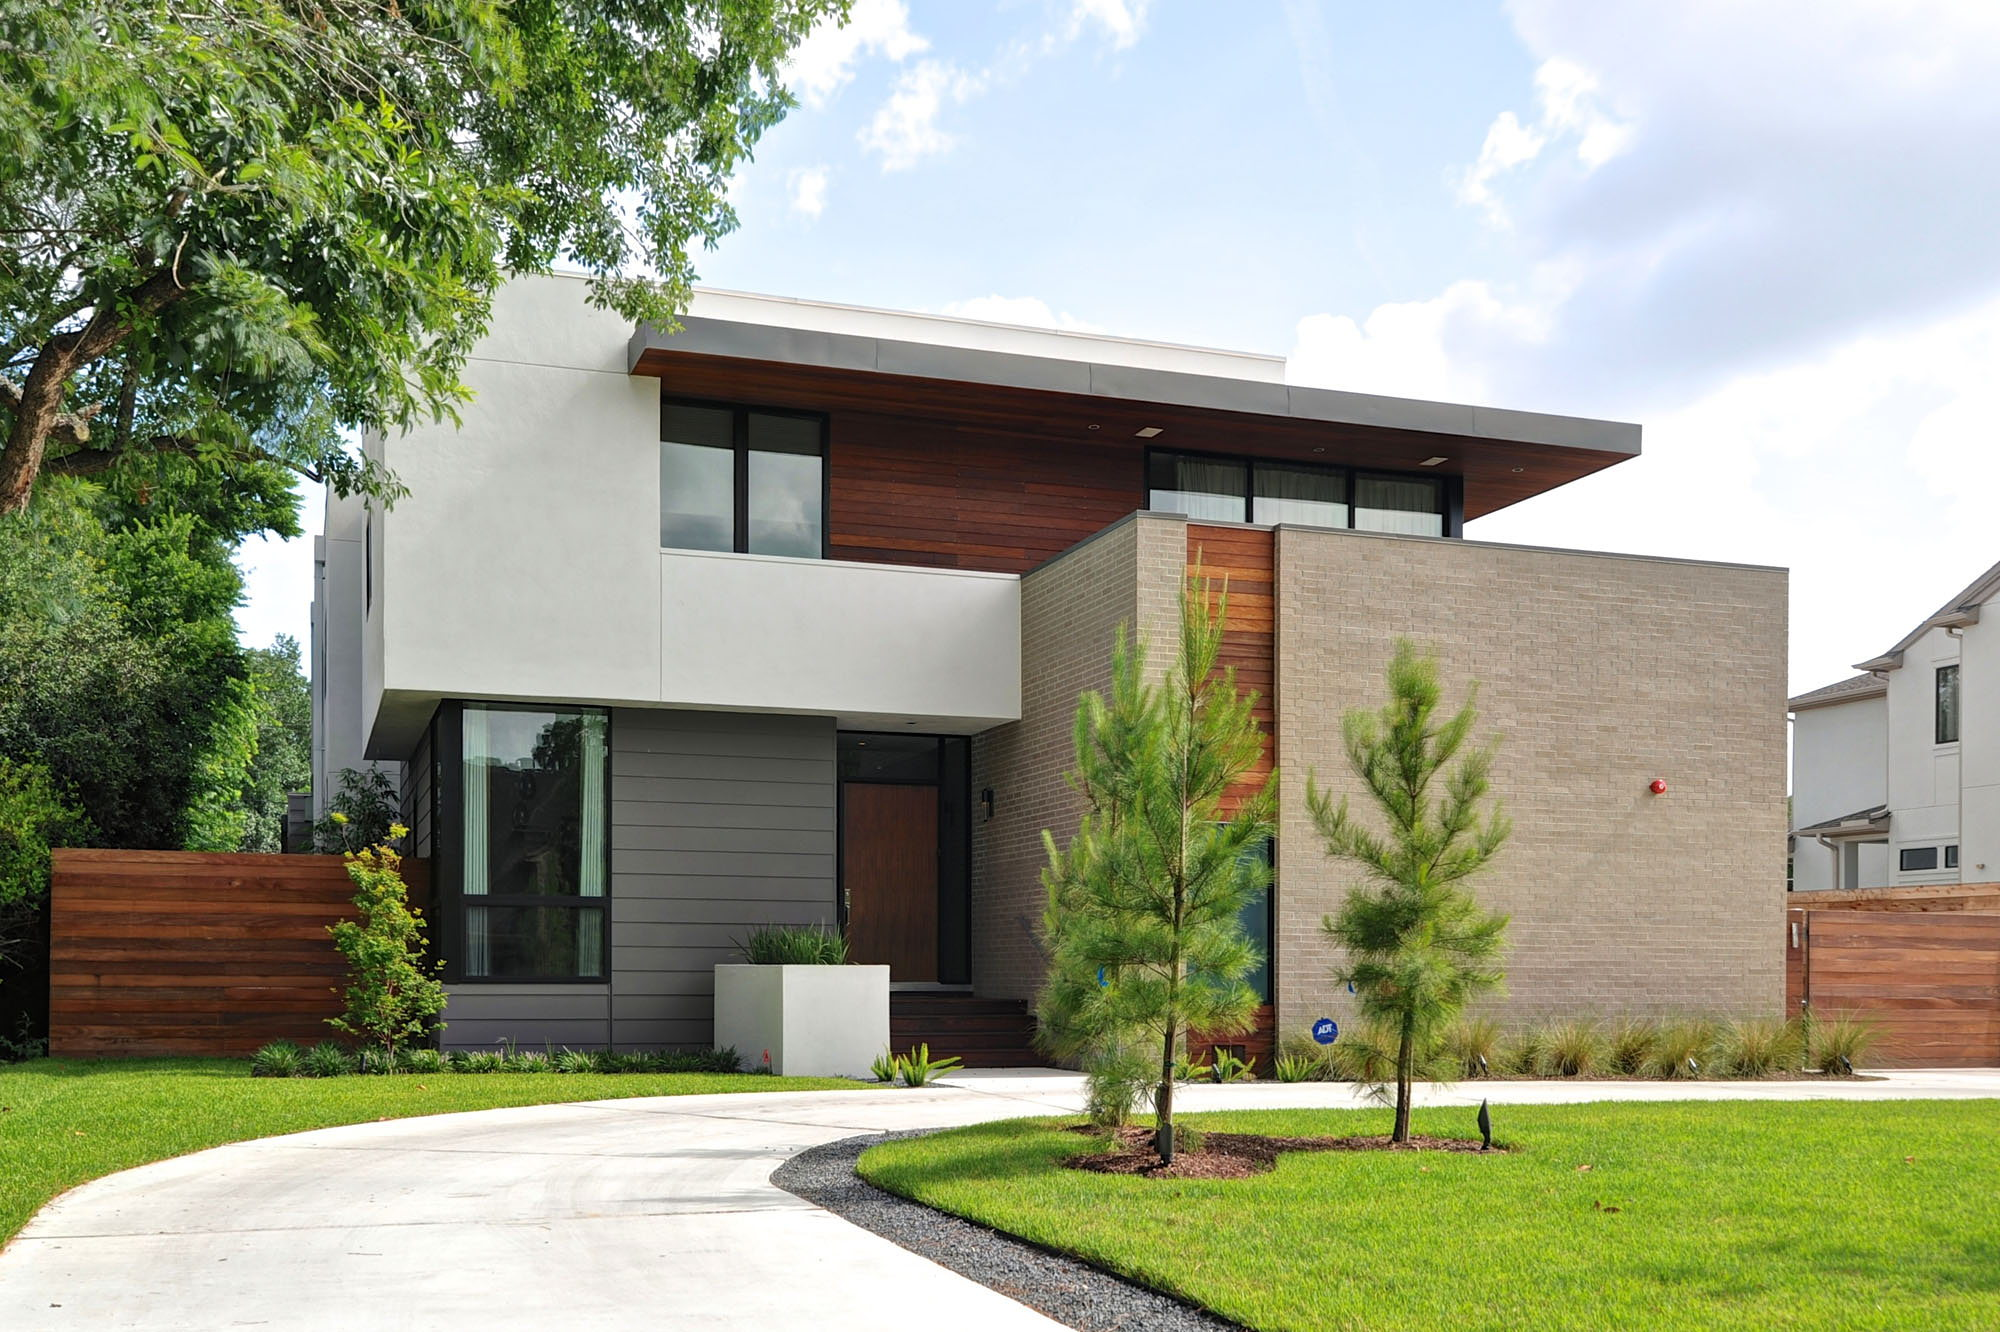 Modern house in houston from architectural firm studiomet for Best modern architecture homes